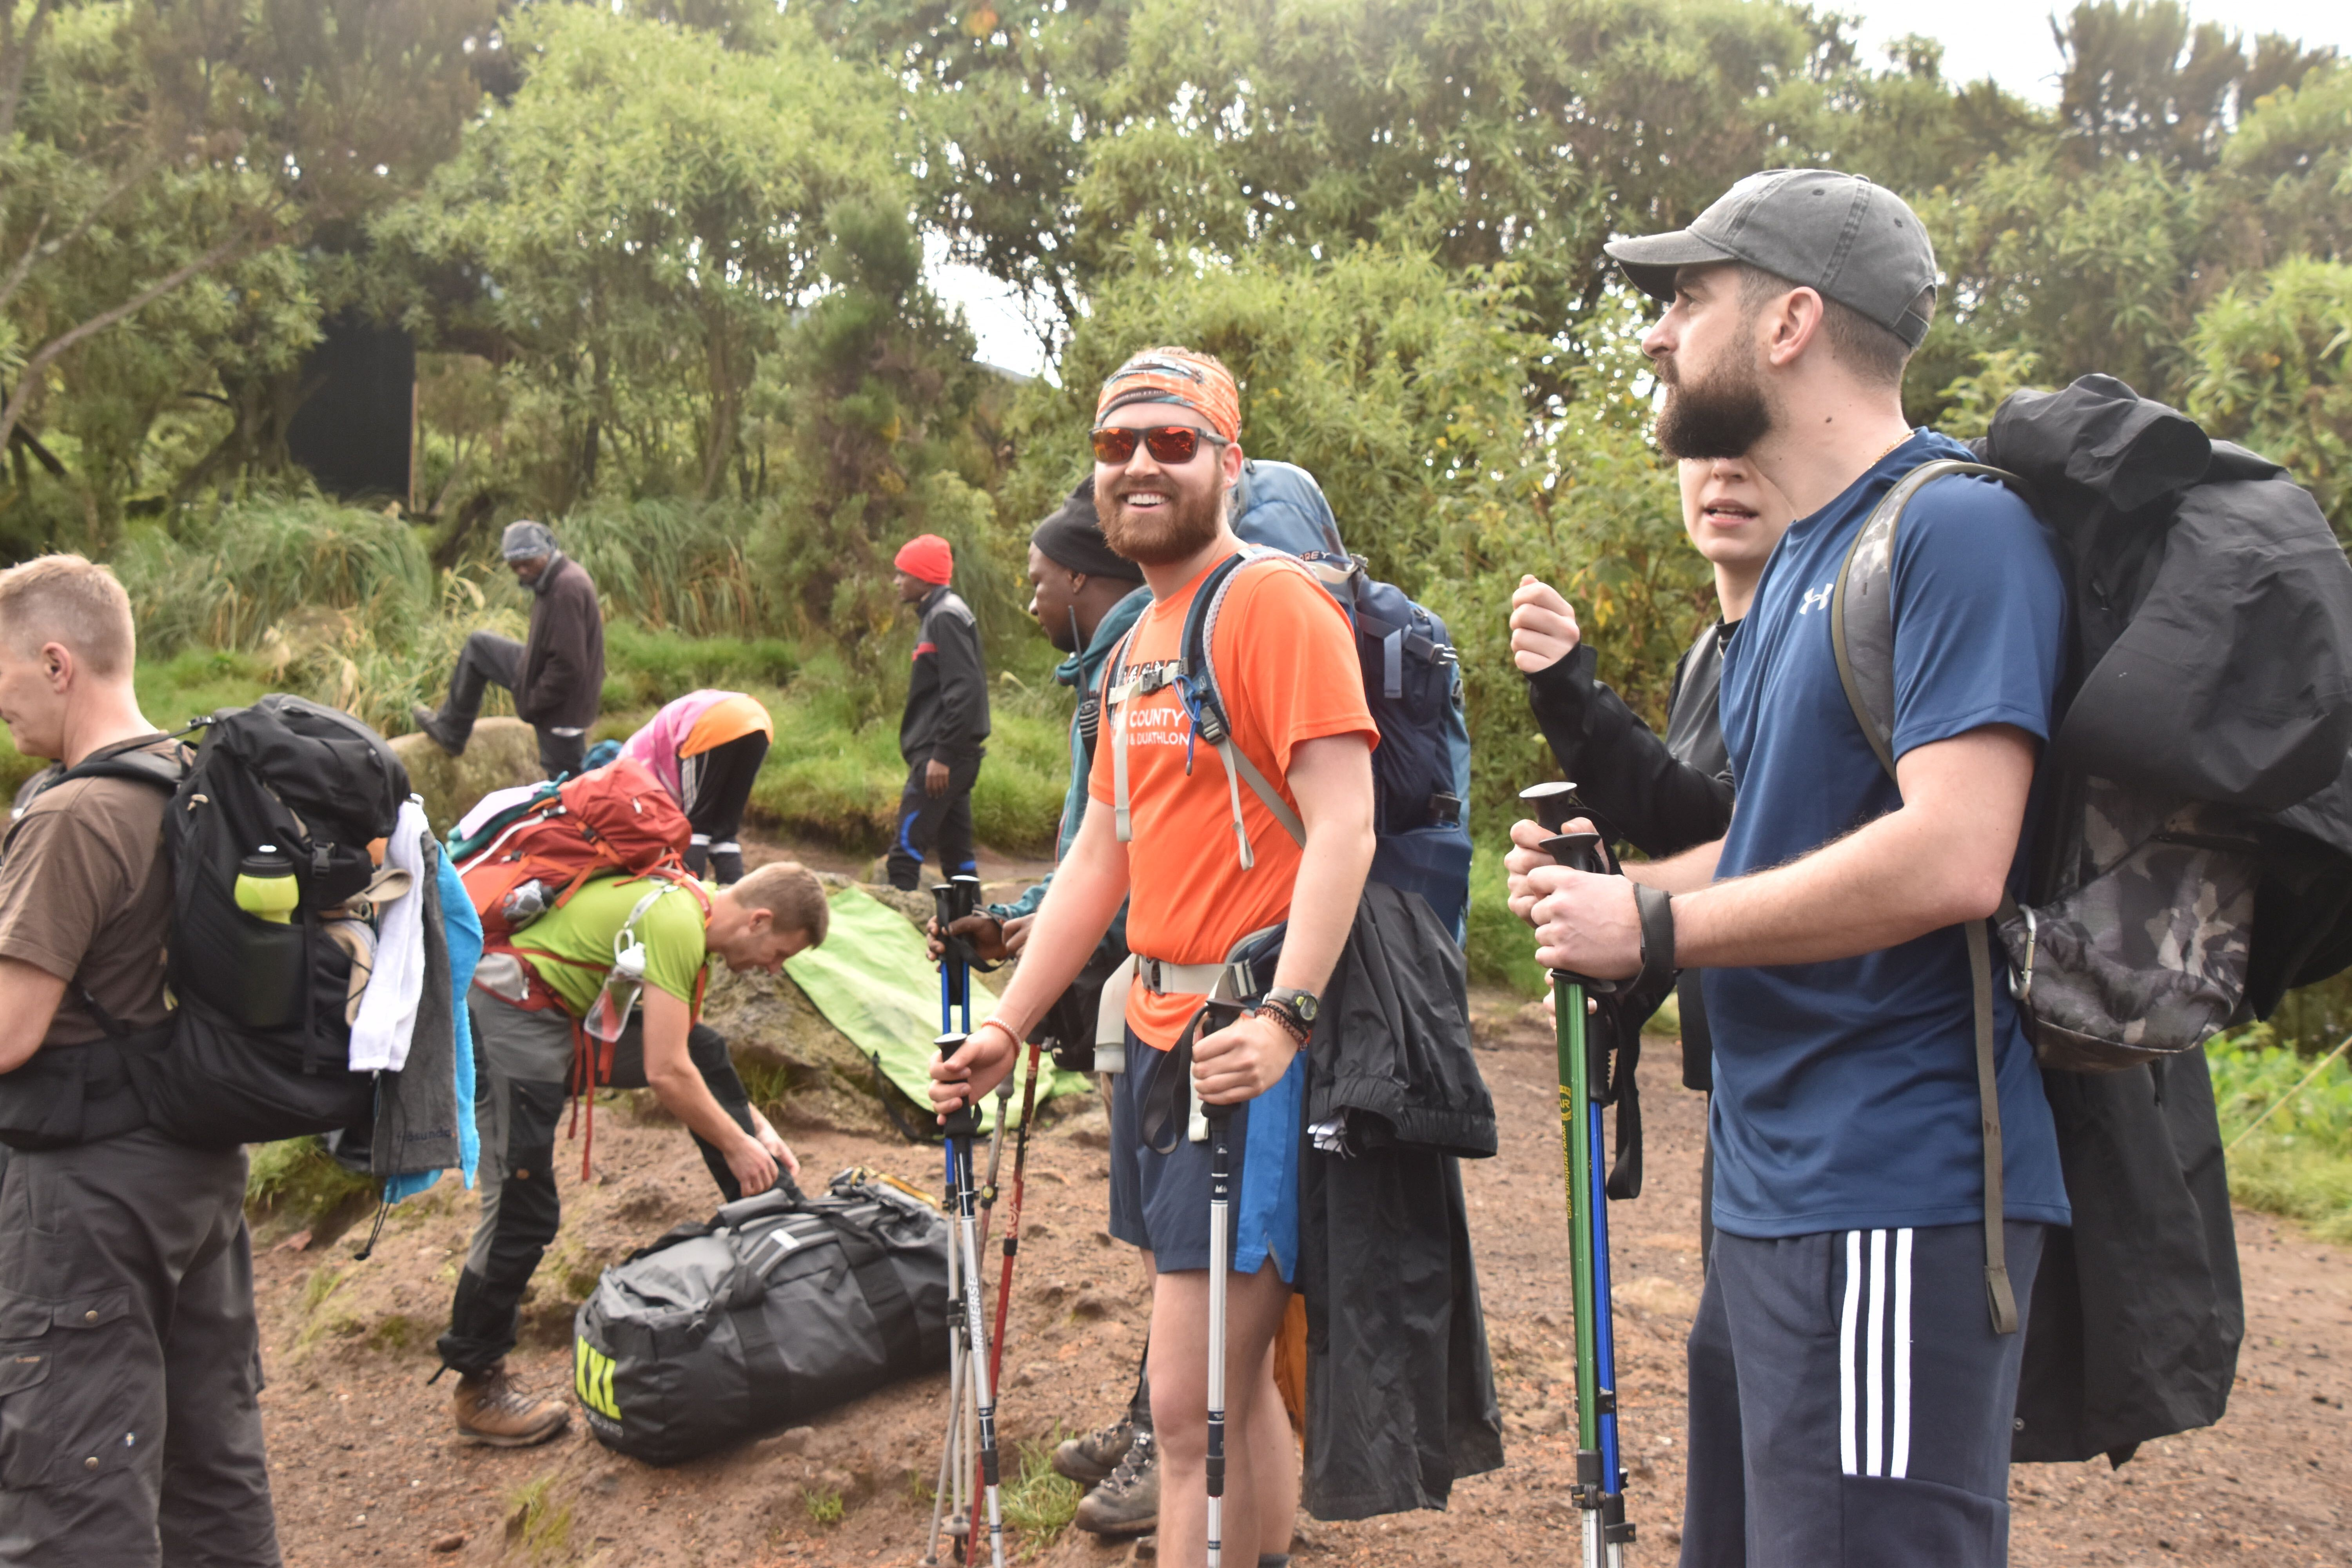 What I Learned About Teams from Climbing Mount Kilimanjaro